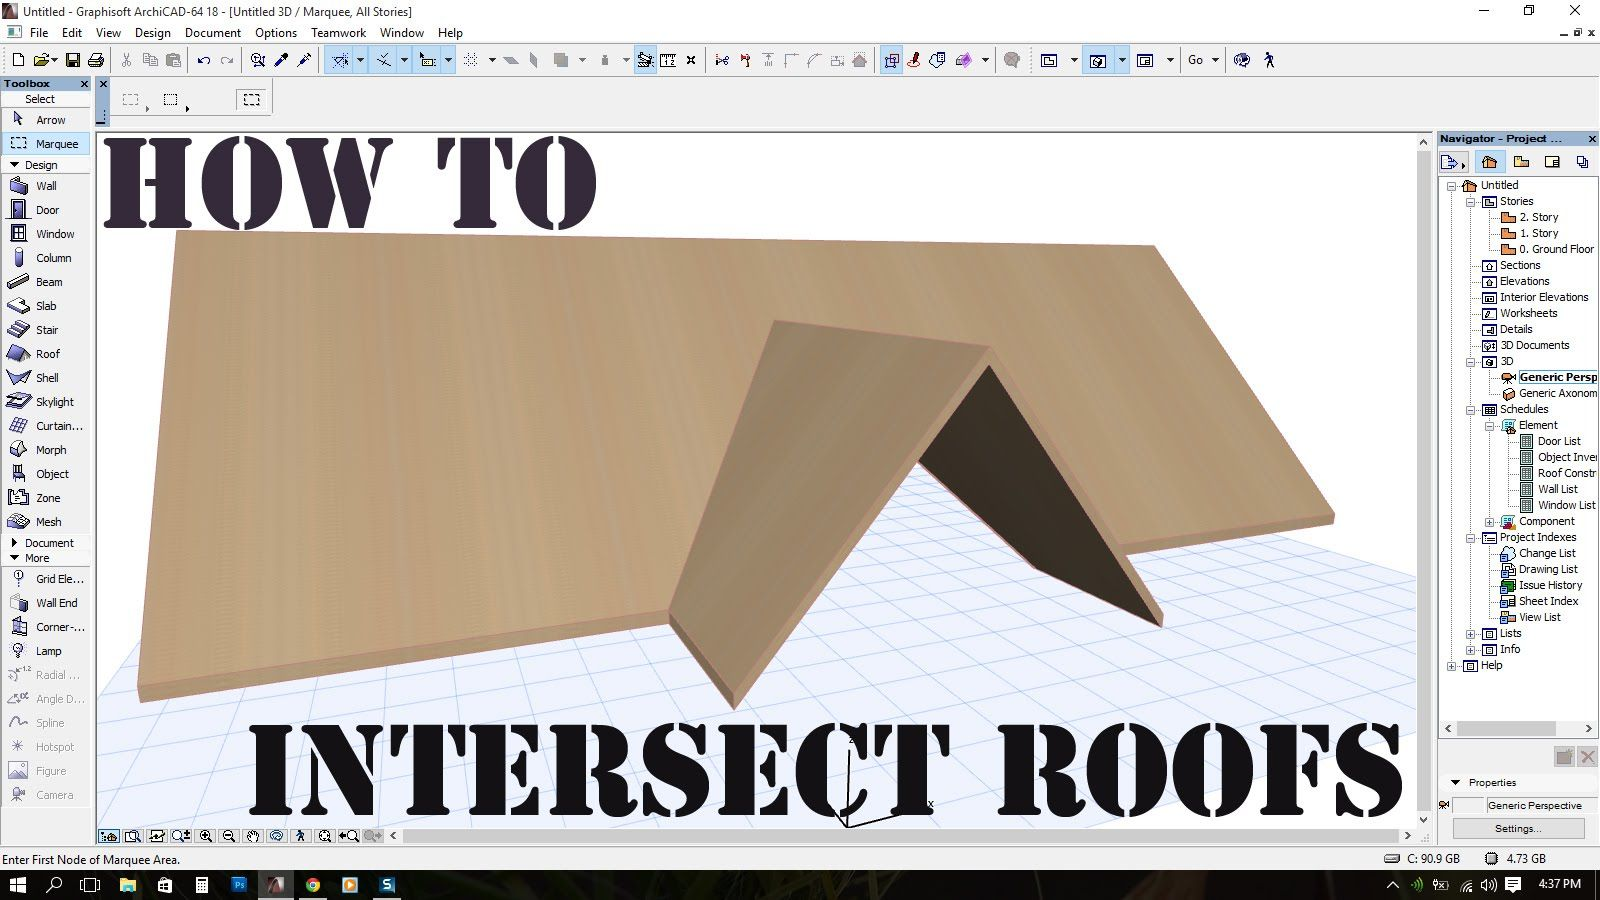 Intersect Roofs in ArchiCAD / Crossgable roof YouTube